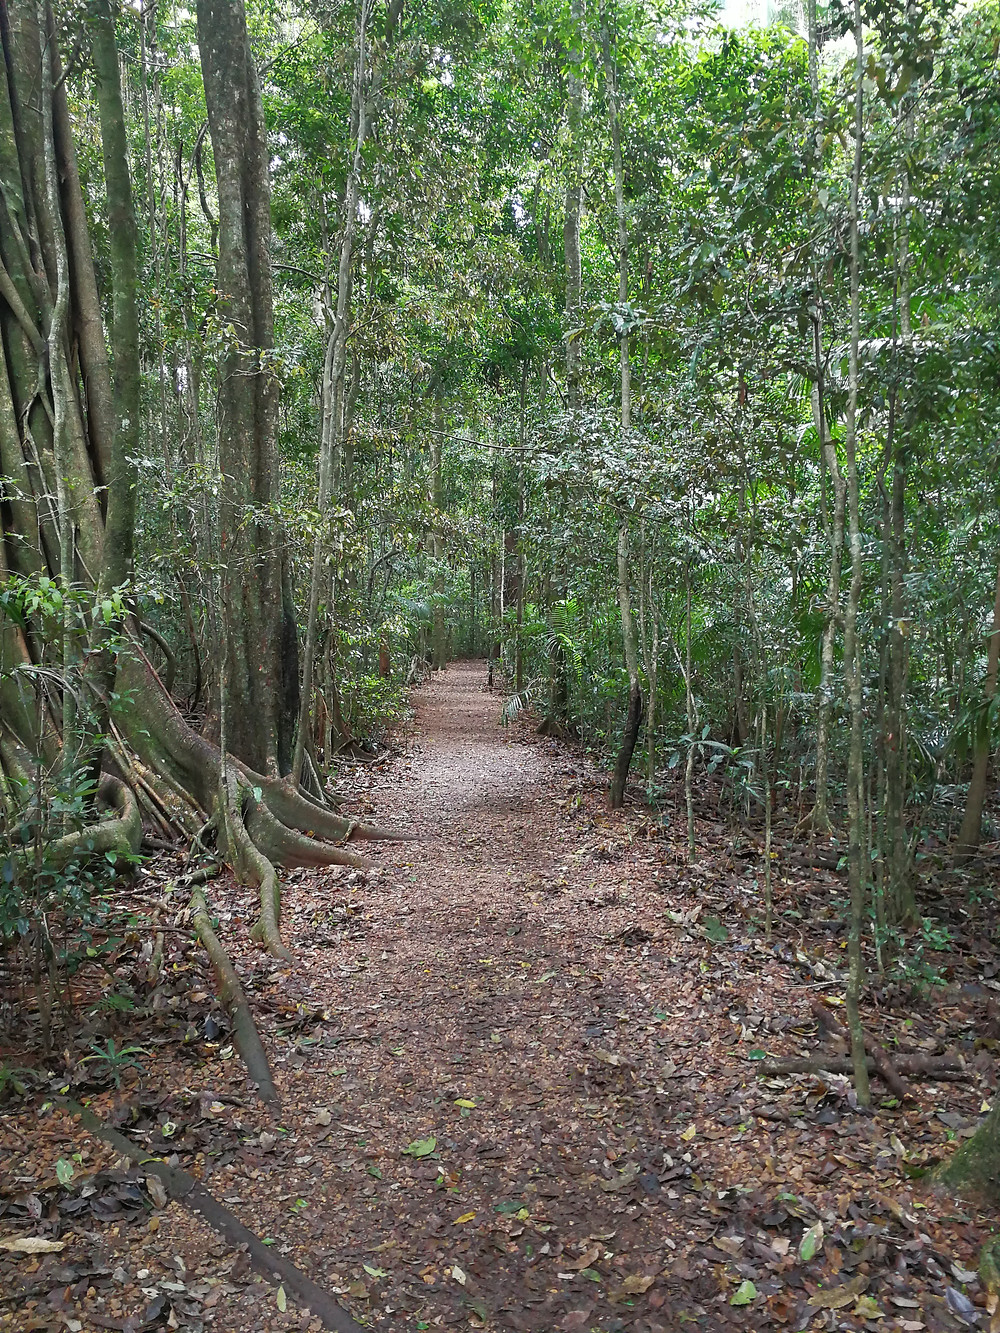 Nature walk with clear paths